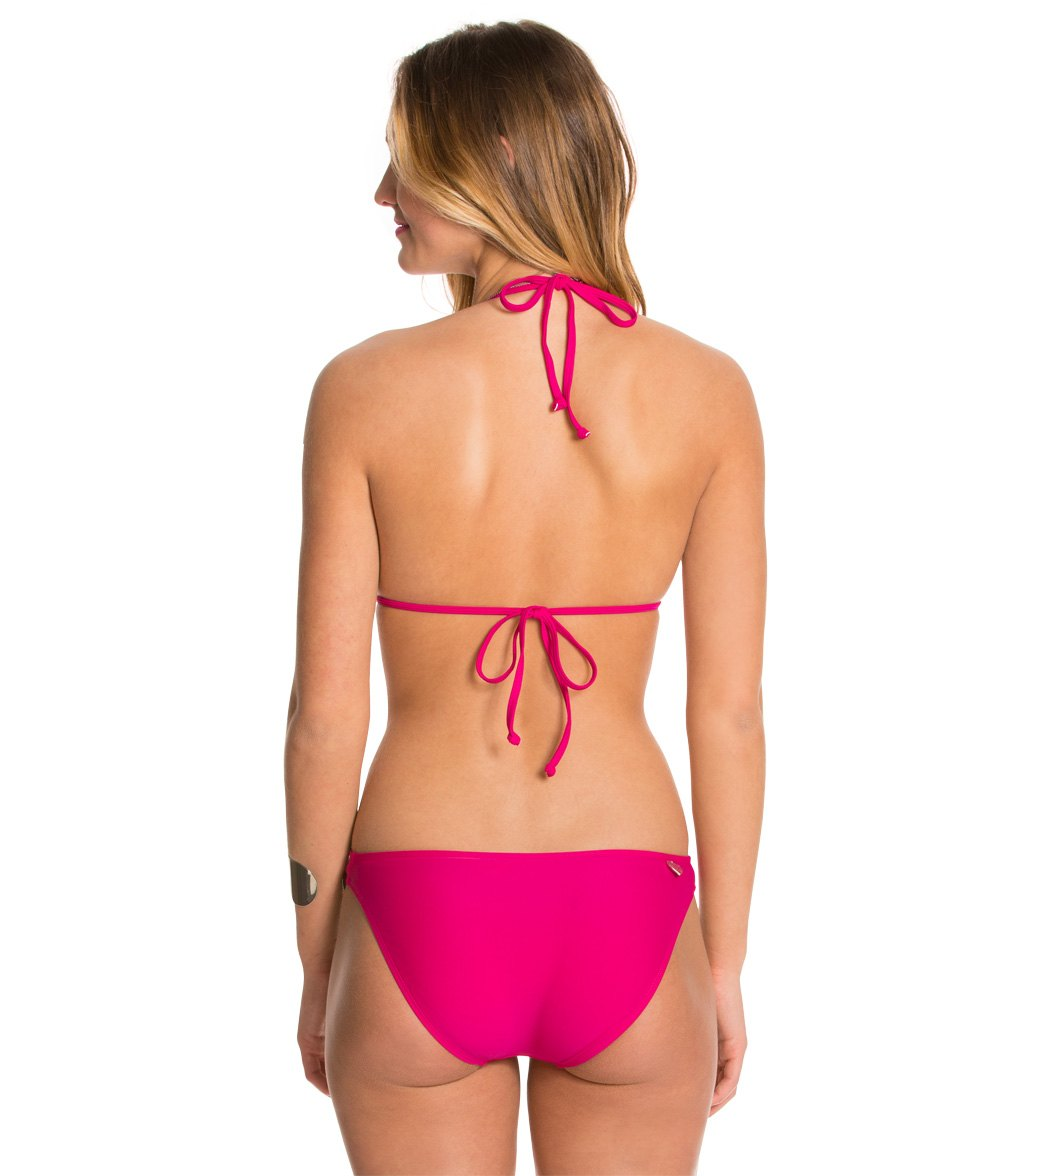 Body Glove Swim Sexylicious Love Bra Monokini One Piece ...